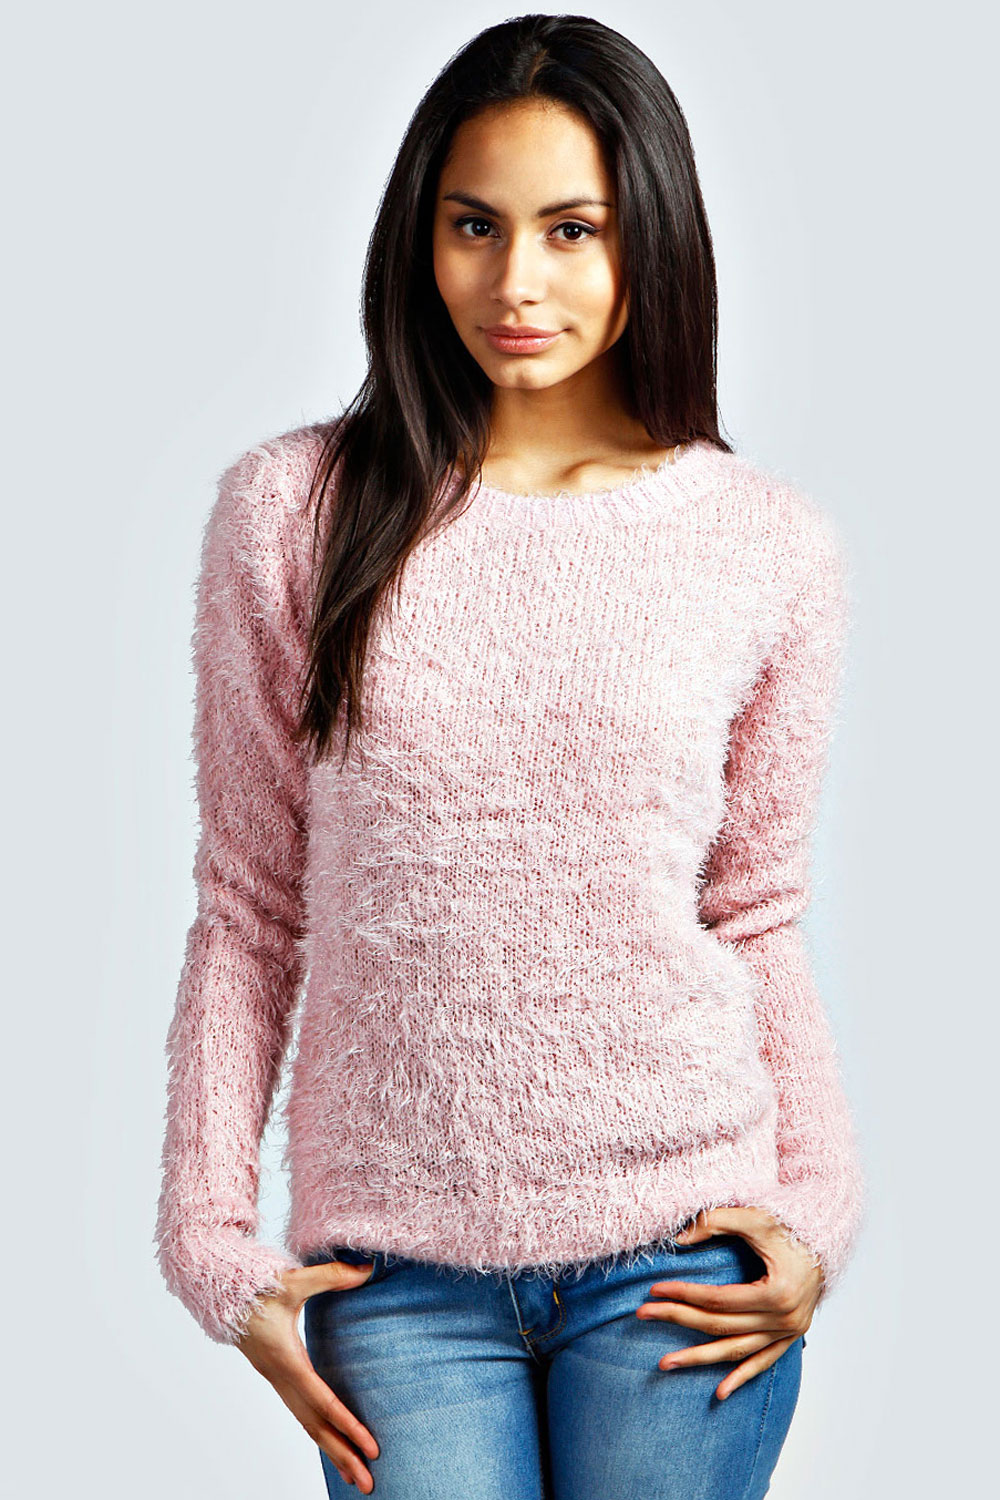 Women's Knitted Jumpers & Sweaters Welcome to our collection of lovingly designed, carefully made jumpers which are easy to wear. Our % natural yarns and blends feel soft against the skin and are completely breathable for year-round comfort.